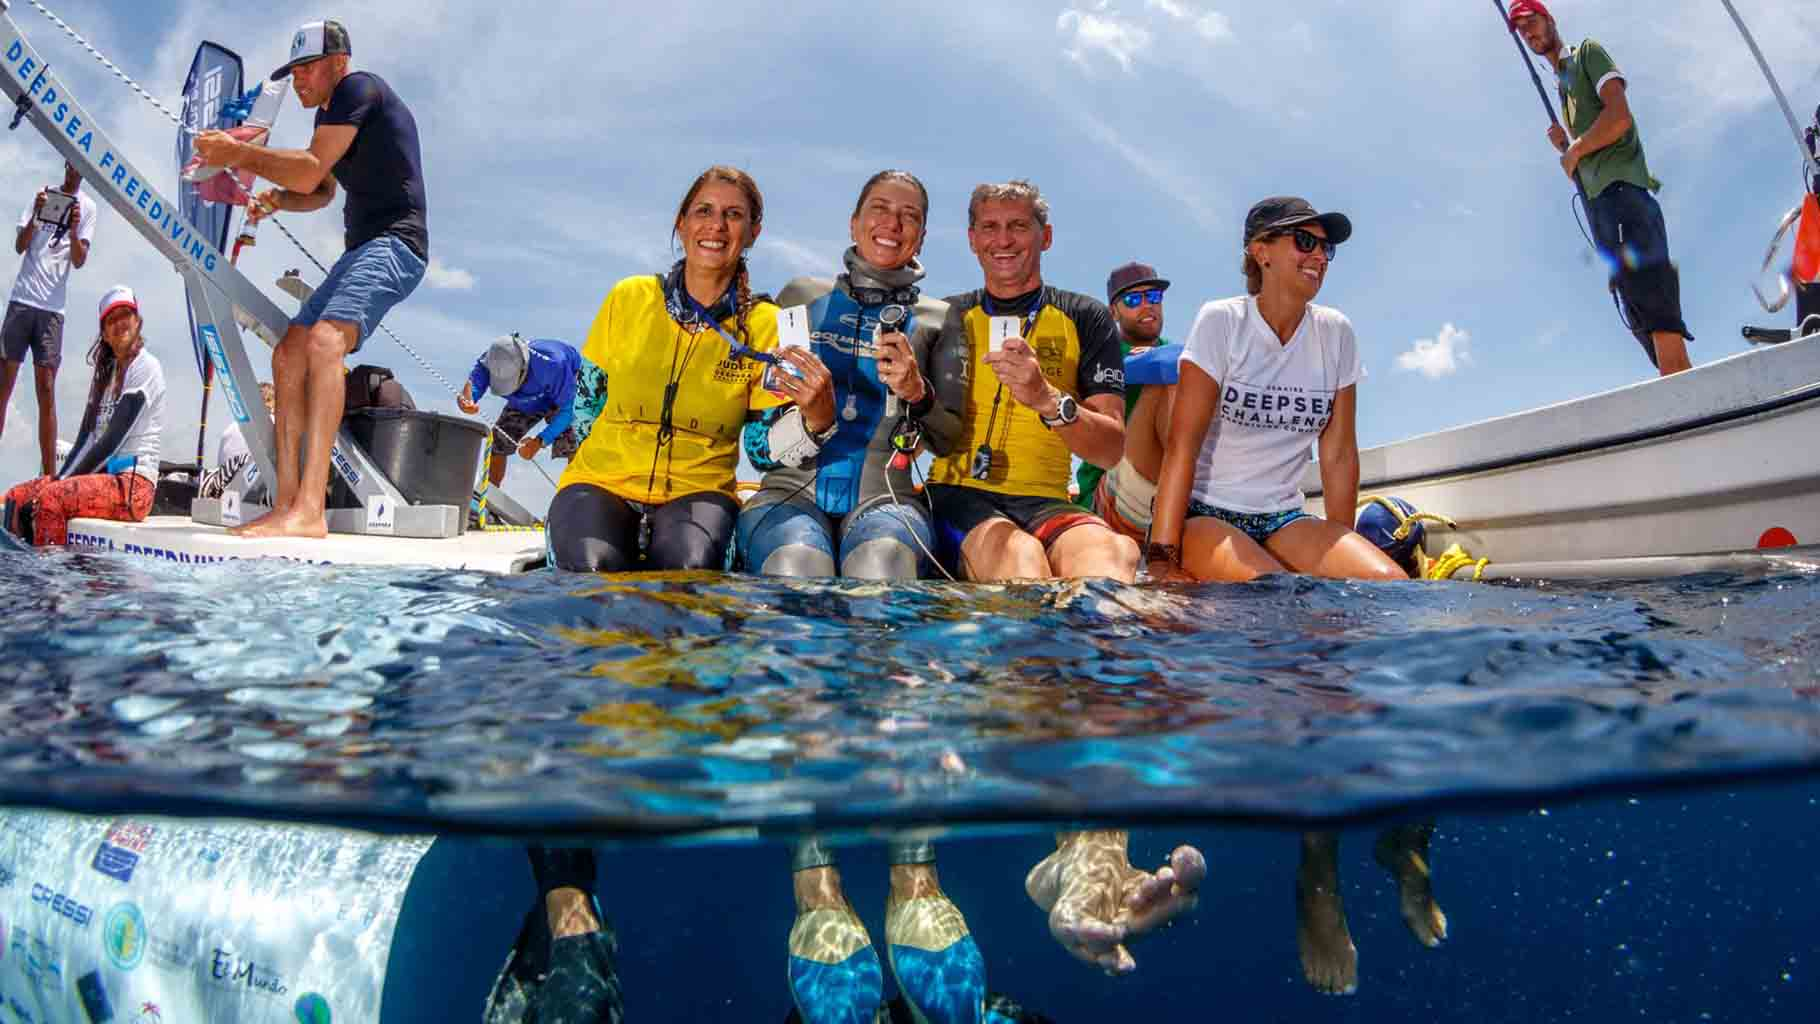 Carolina Schrappe breaks Continental Record and other athletes set multiple personal bests during 10 days.